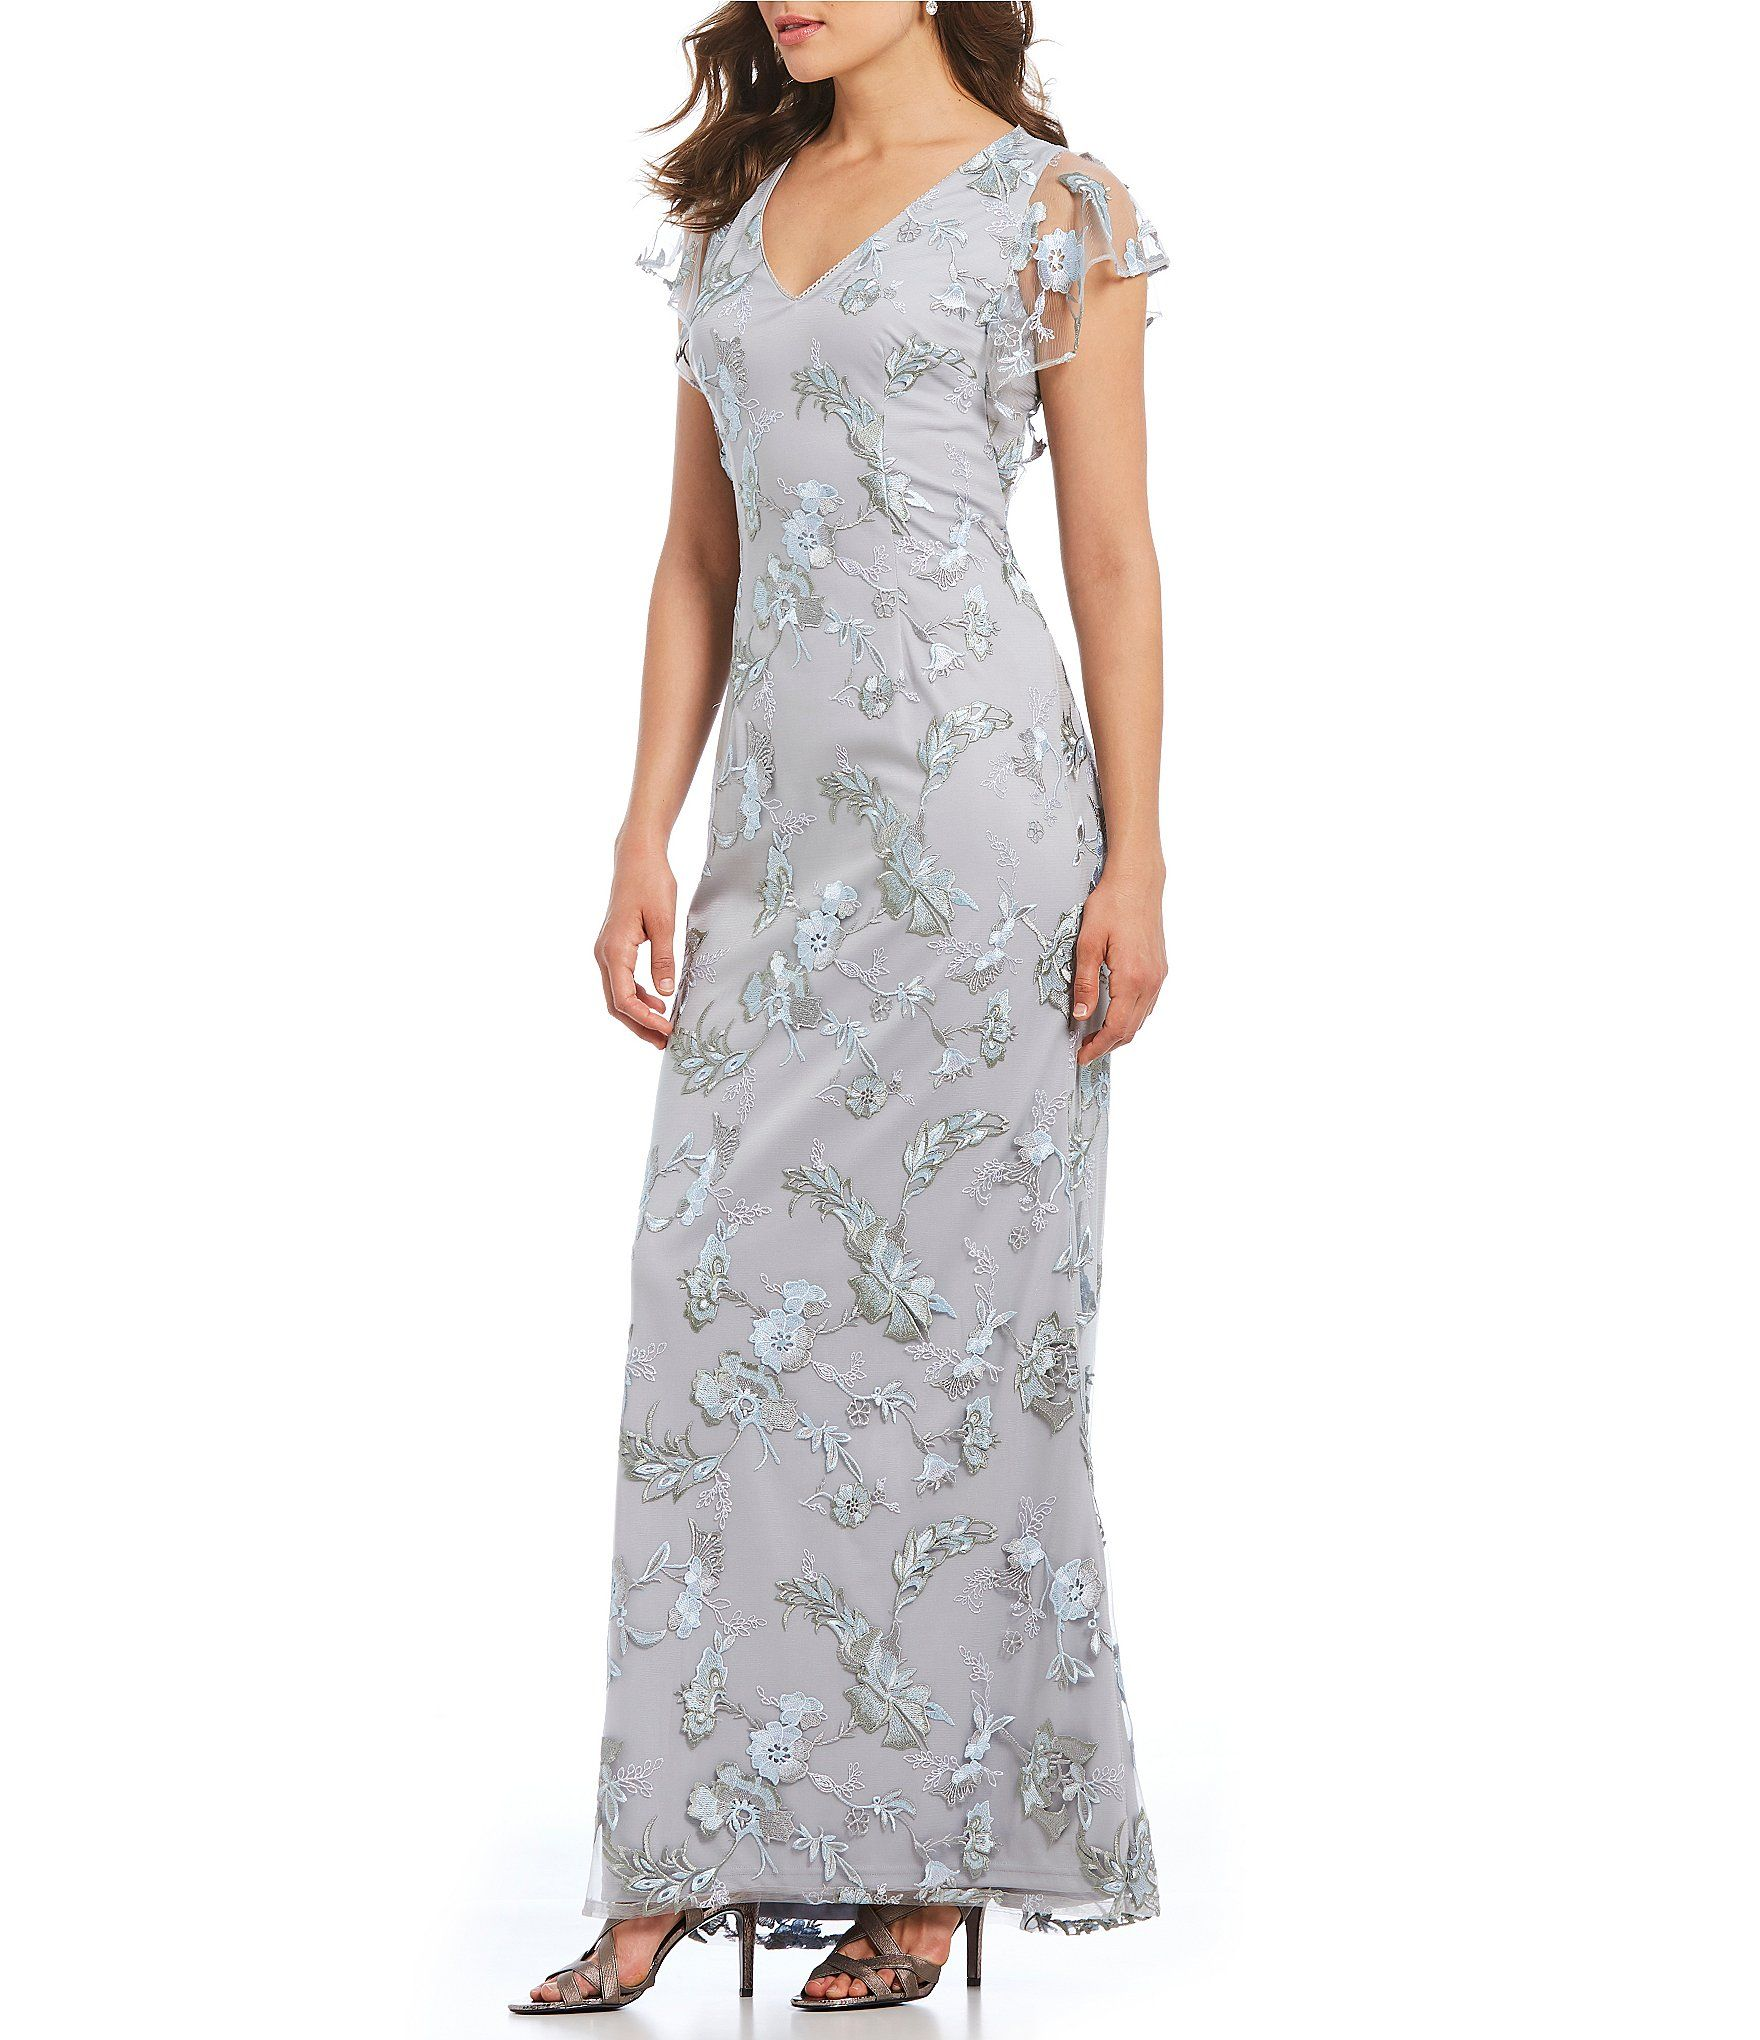 Adrianna papell metallic embroidered gown dillards wedding in